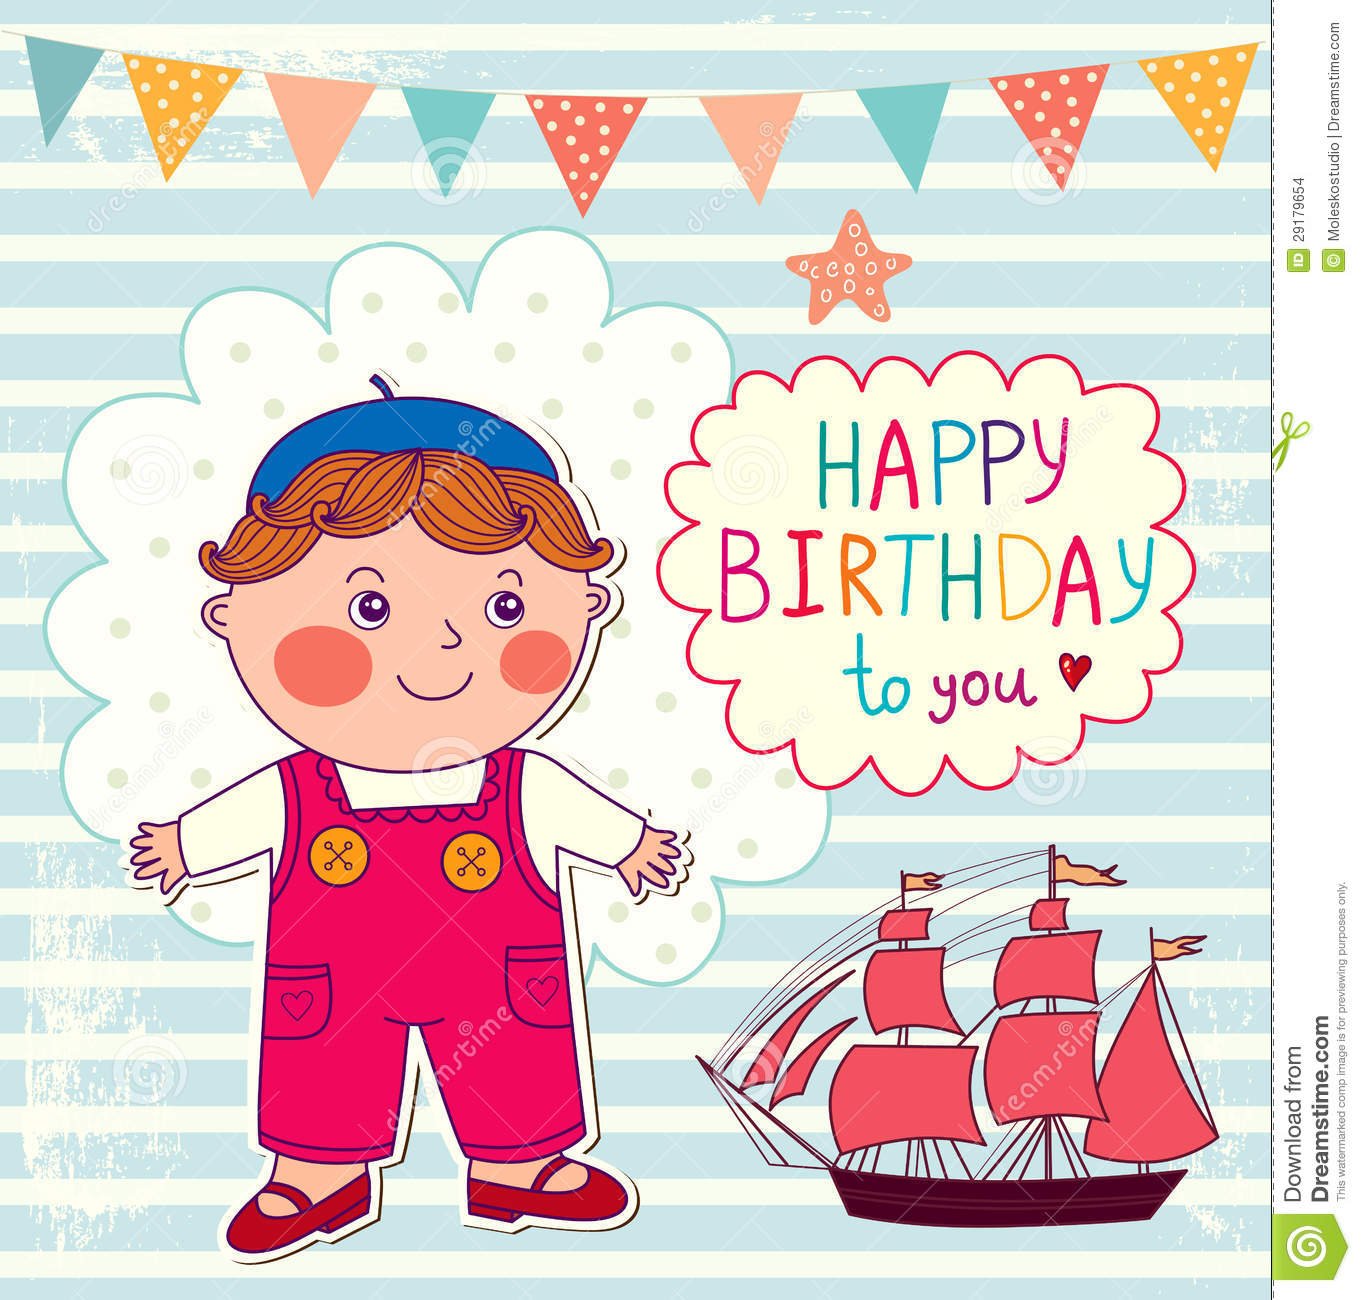 Happy Birthday Cartoon Card Stock Images - Image: 29179654